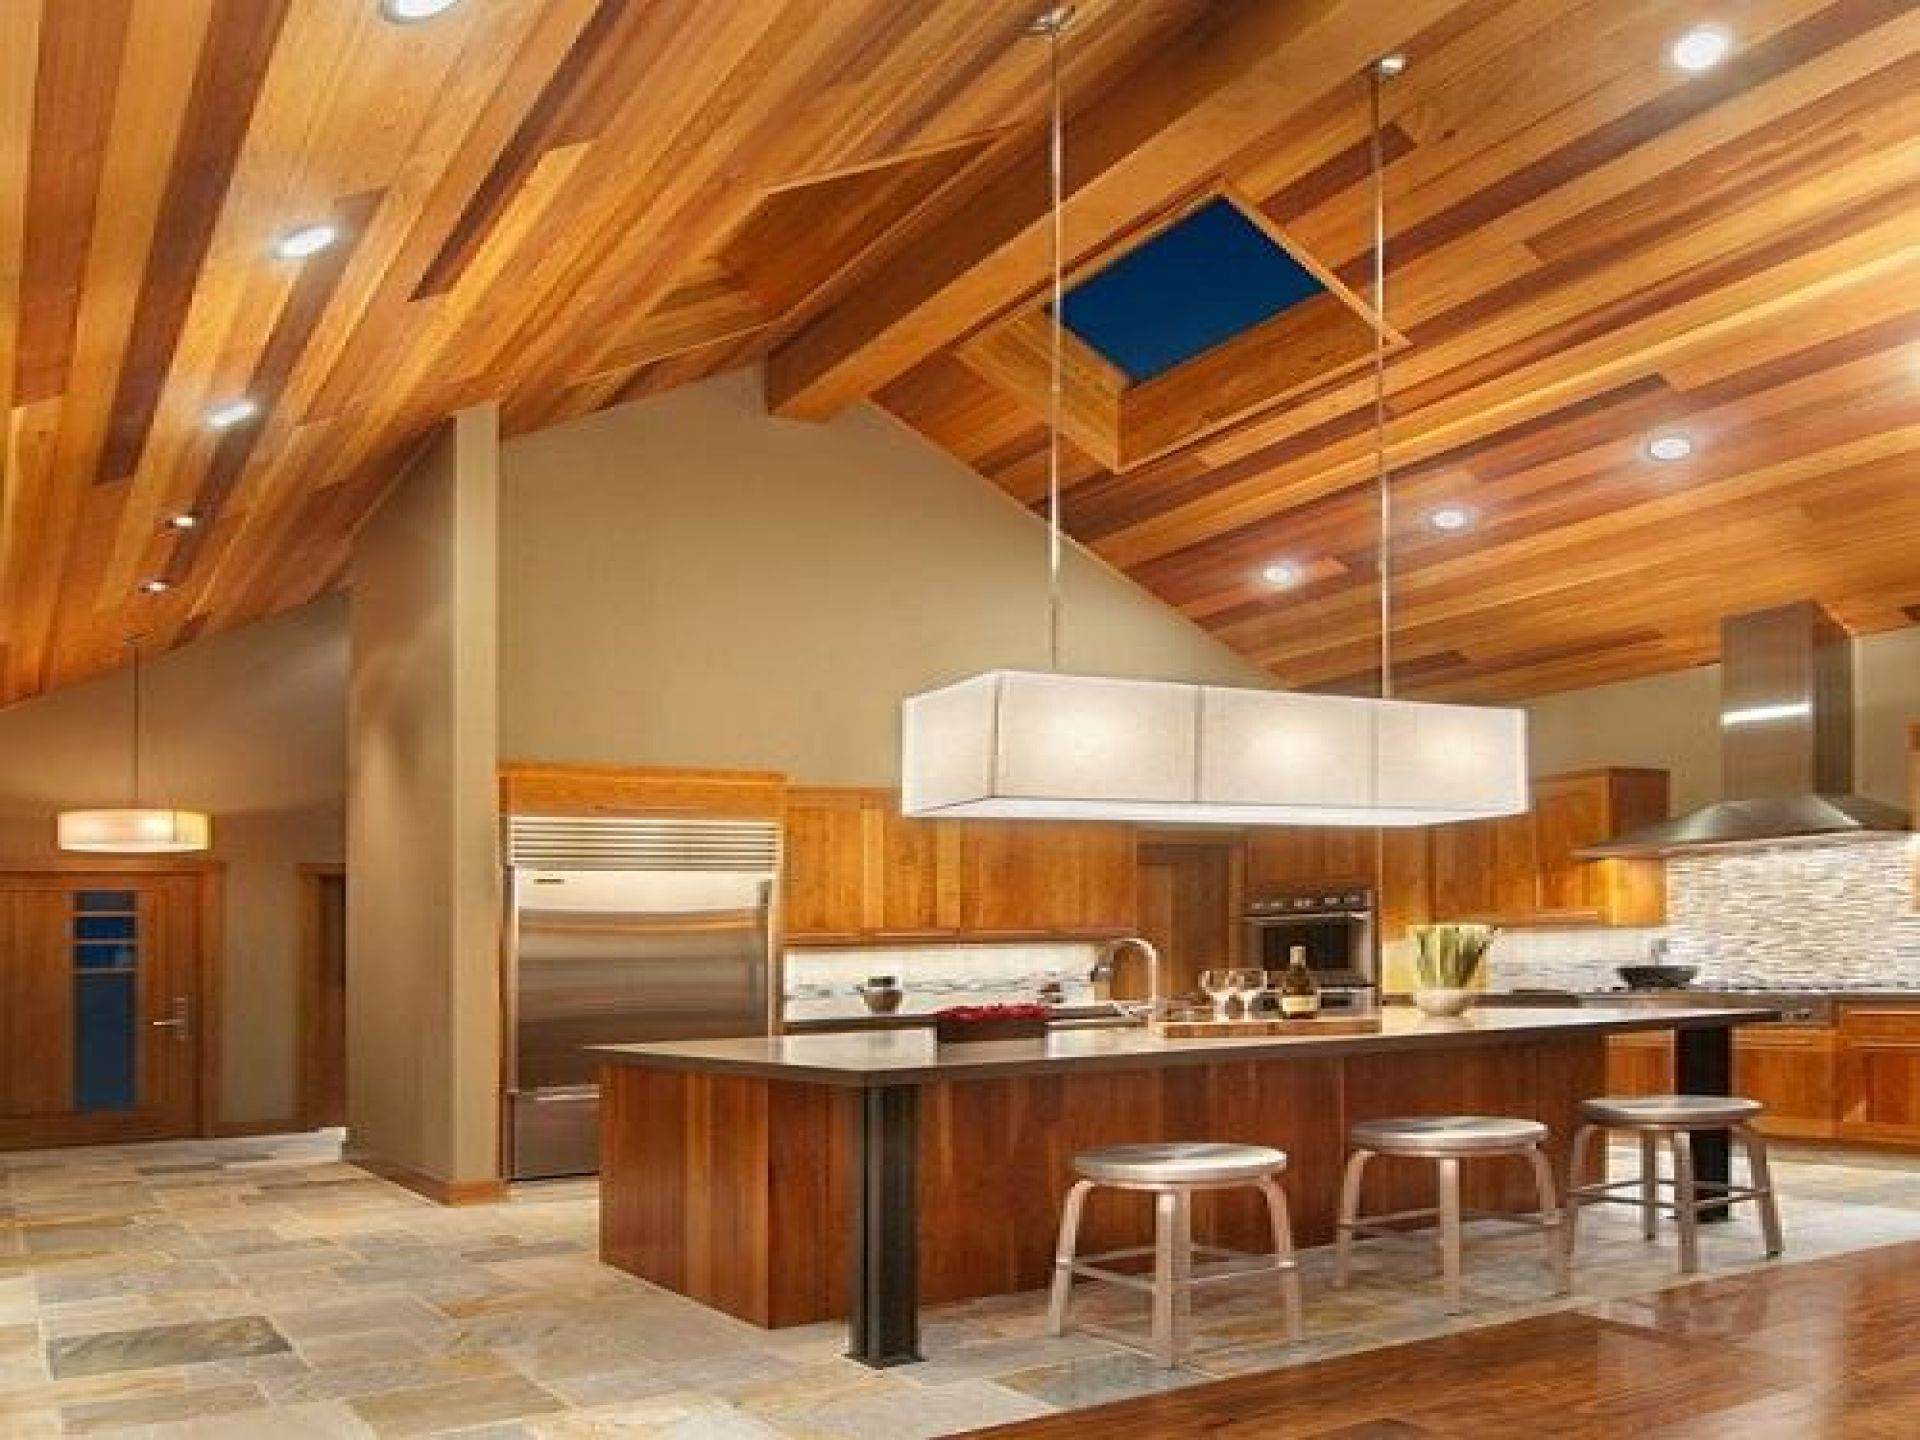 For Kitchen Ceilings Multi Color Wood Ceiling Recessed Lighting Modern Fixture Tile